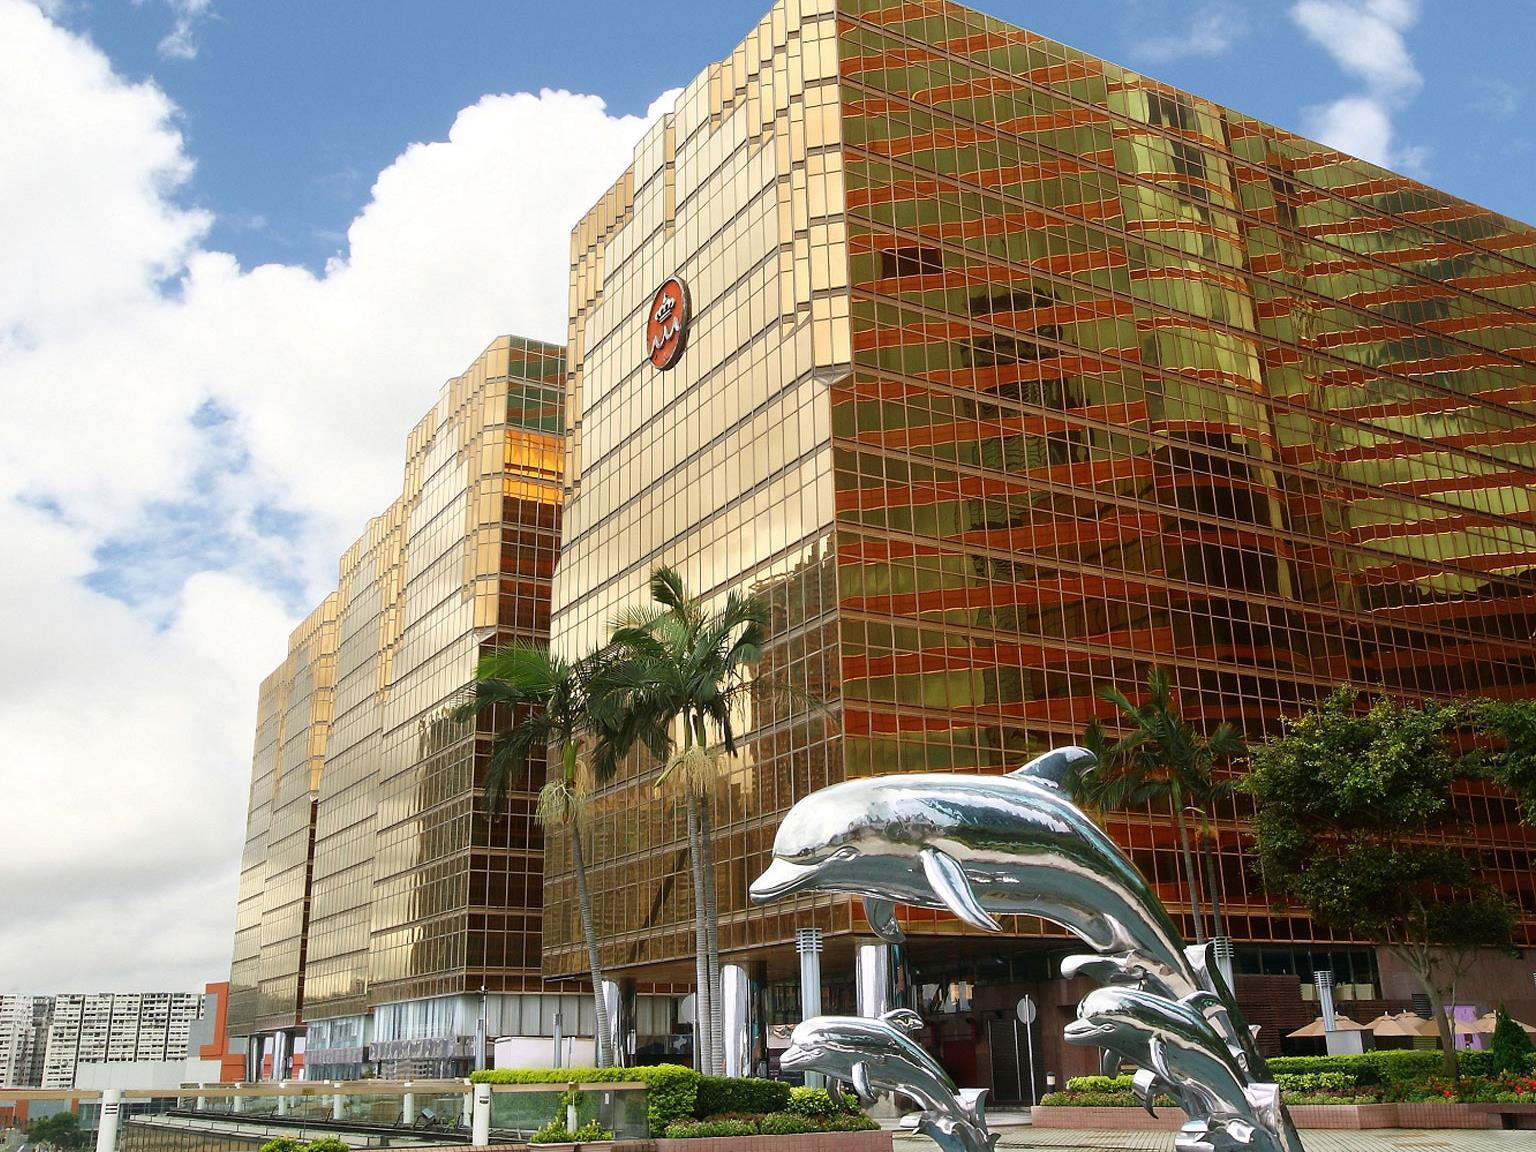 The Royal Pacific Hotel and Towers הונג קונג